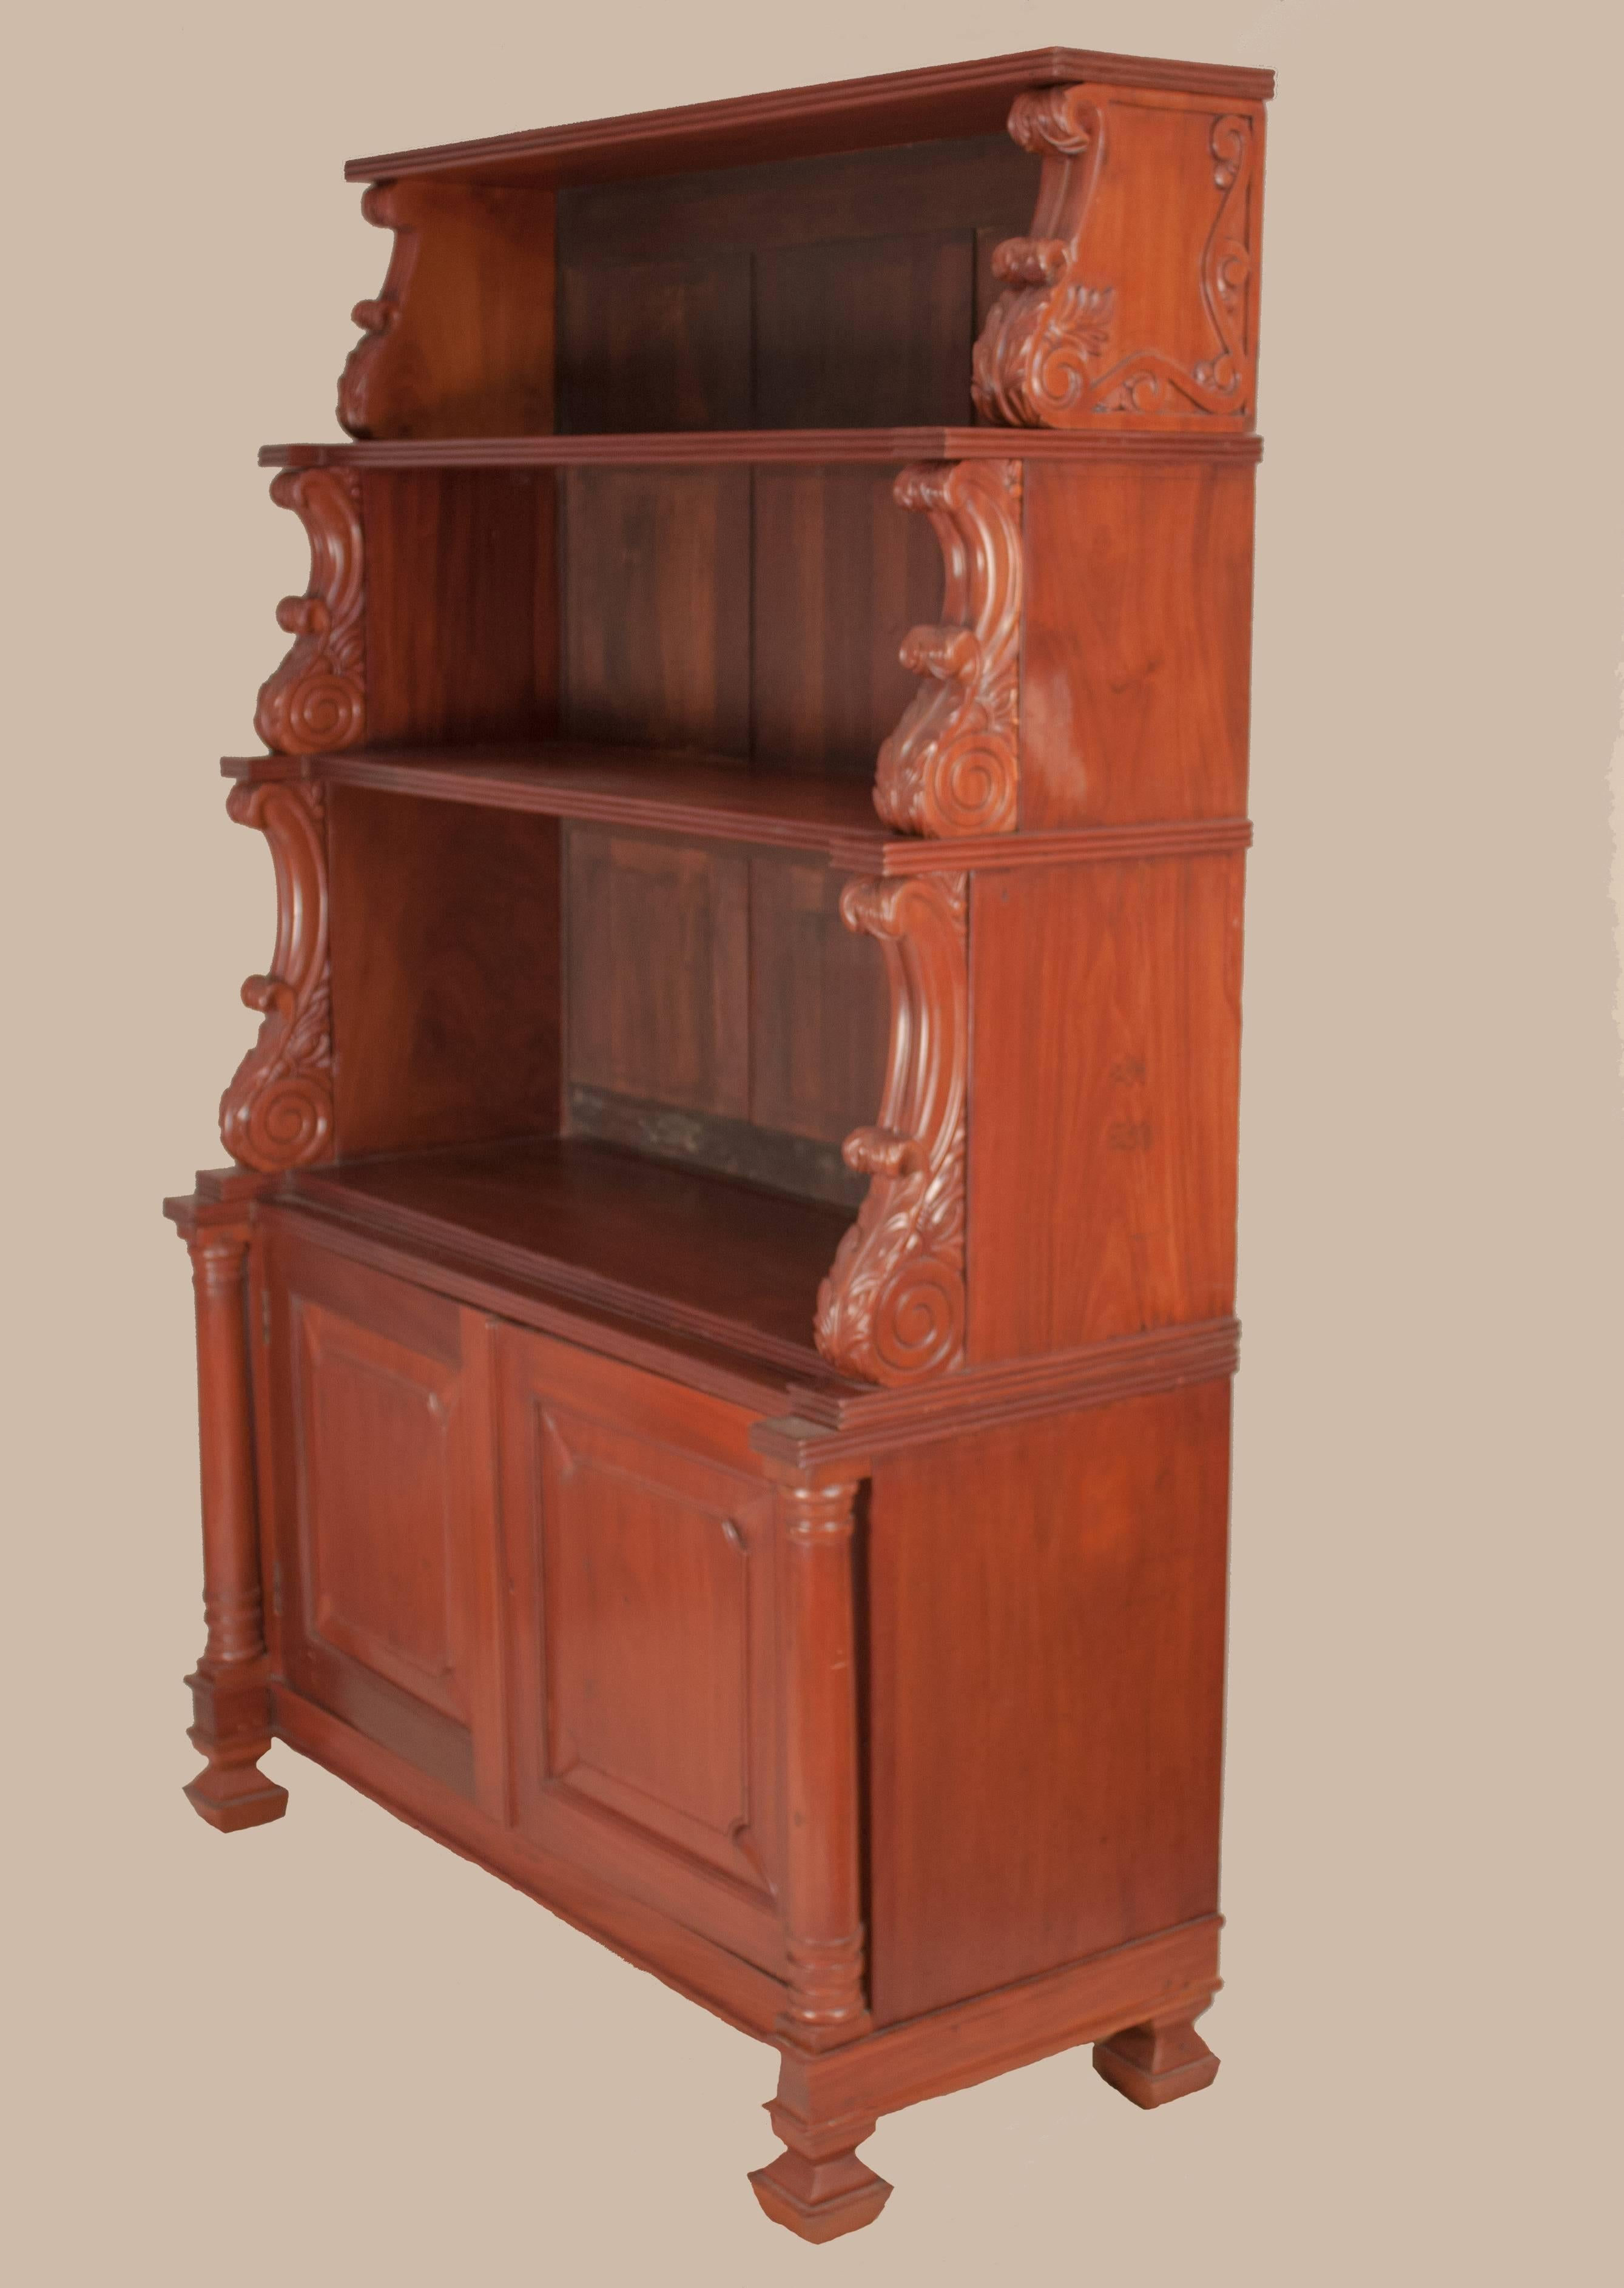 Indo Portuguese Hutch Or Display Case In Rich Mahogany With Carved Acanthus  Details, Circa